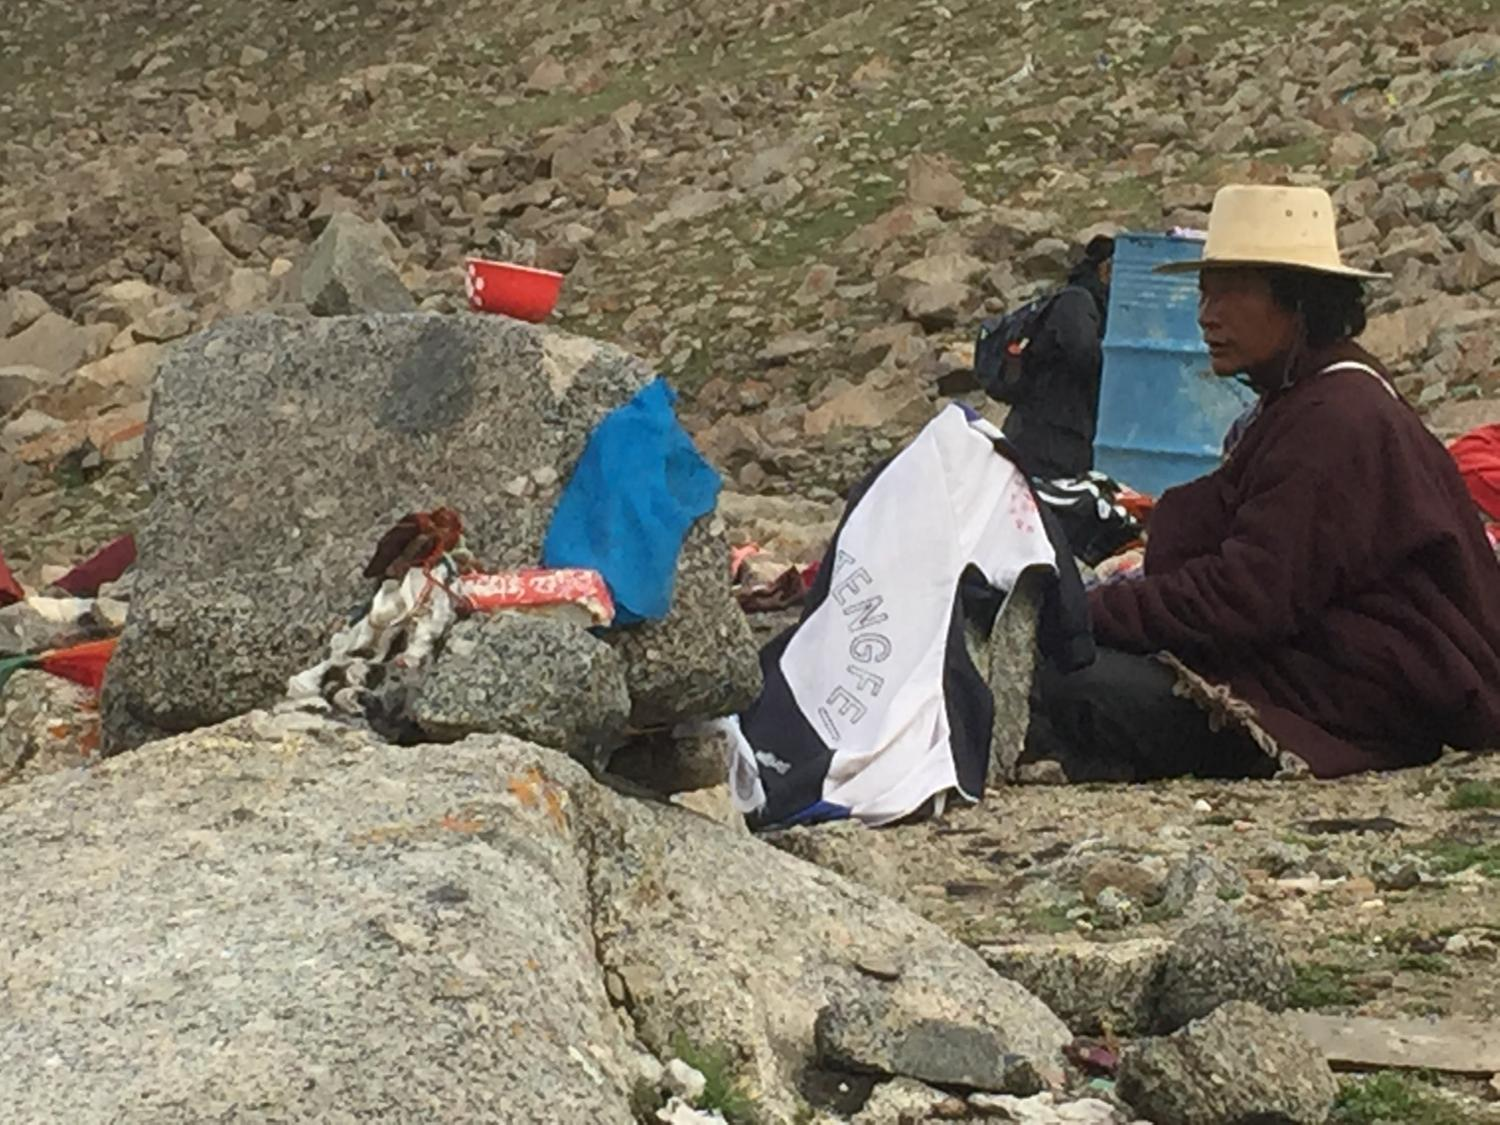 pilgrim at sky burial site